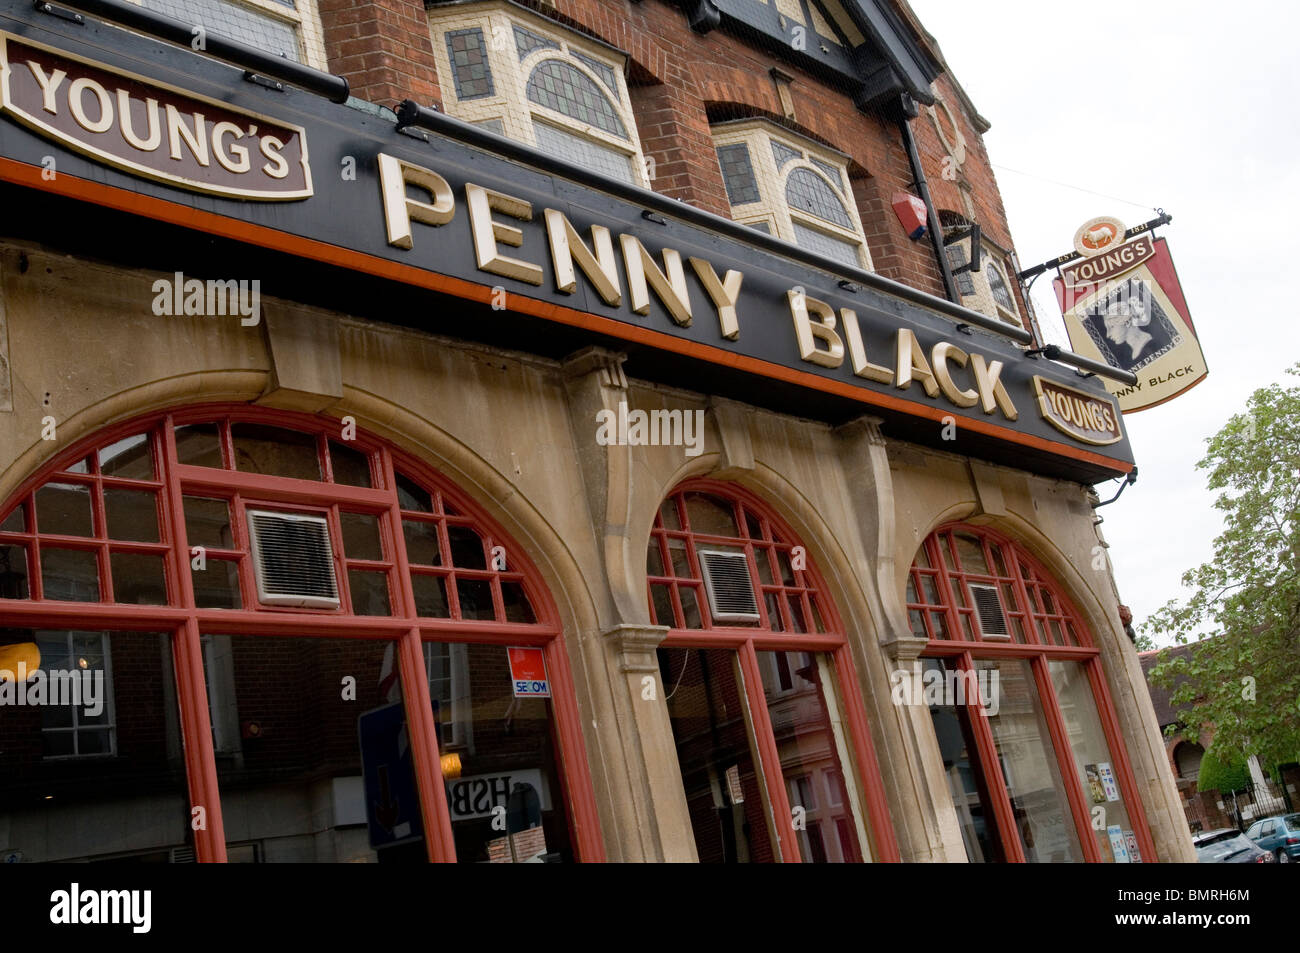 youngs brewery breweries brewer young pub british uk chain pubs public house beer sales selling drink beers license - Stock Image